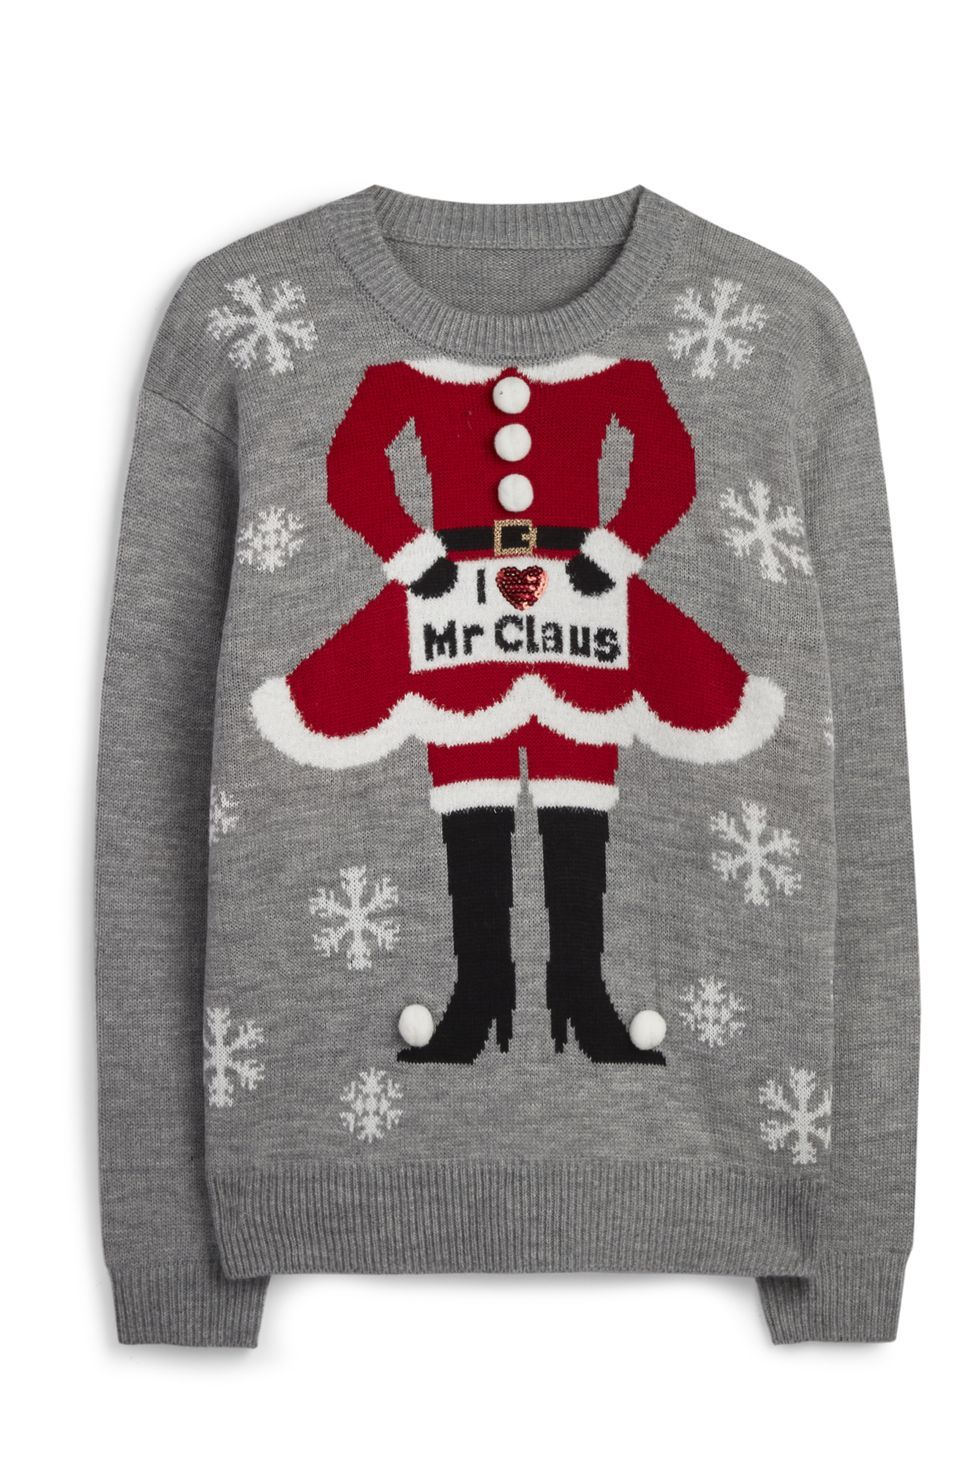 BNWT Primark Snowman Sweater Funny Christmas Jumper and Best Gift